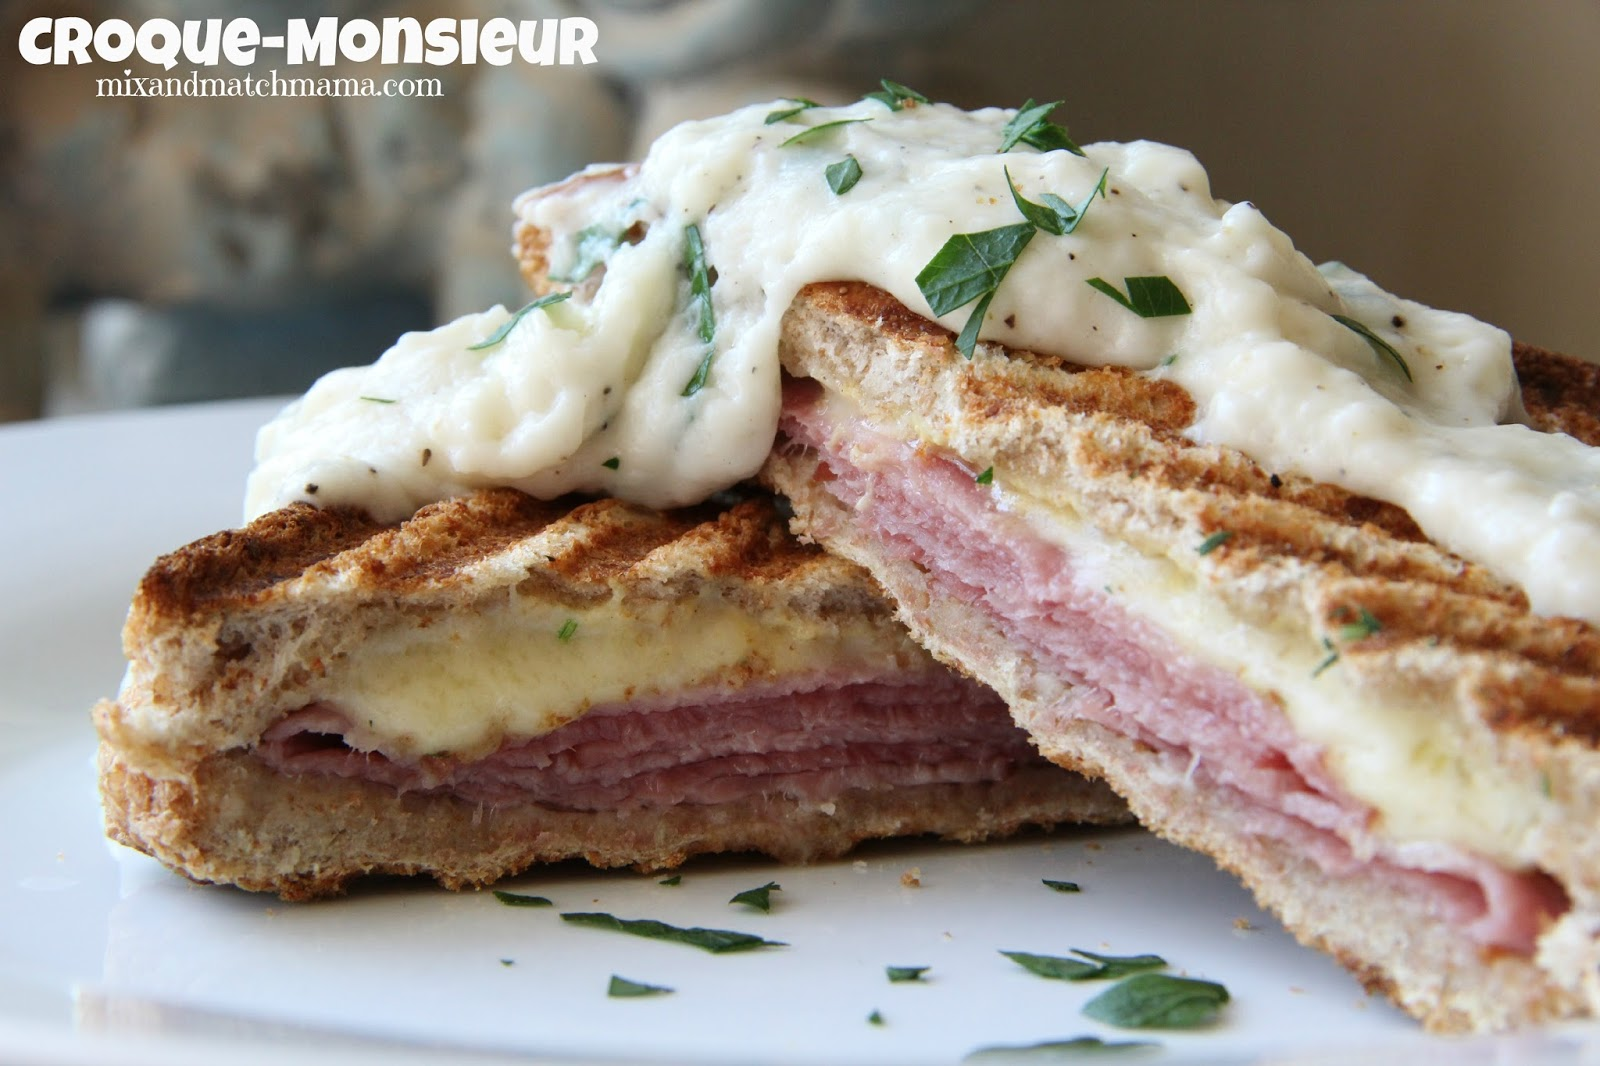 Mix and Match Mama: Dinner Tonight: Croque-Monsieur